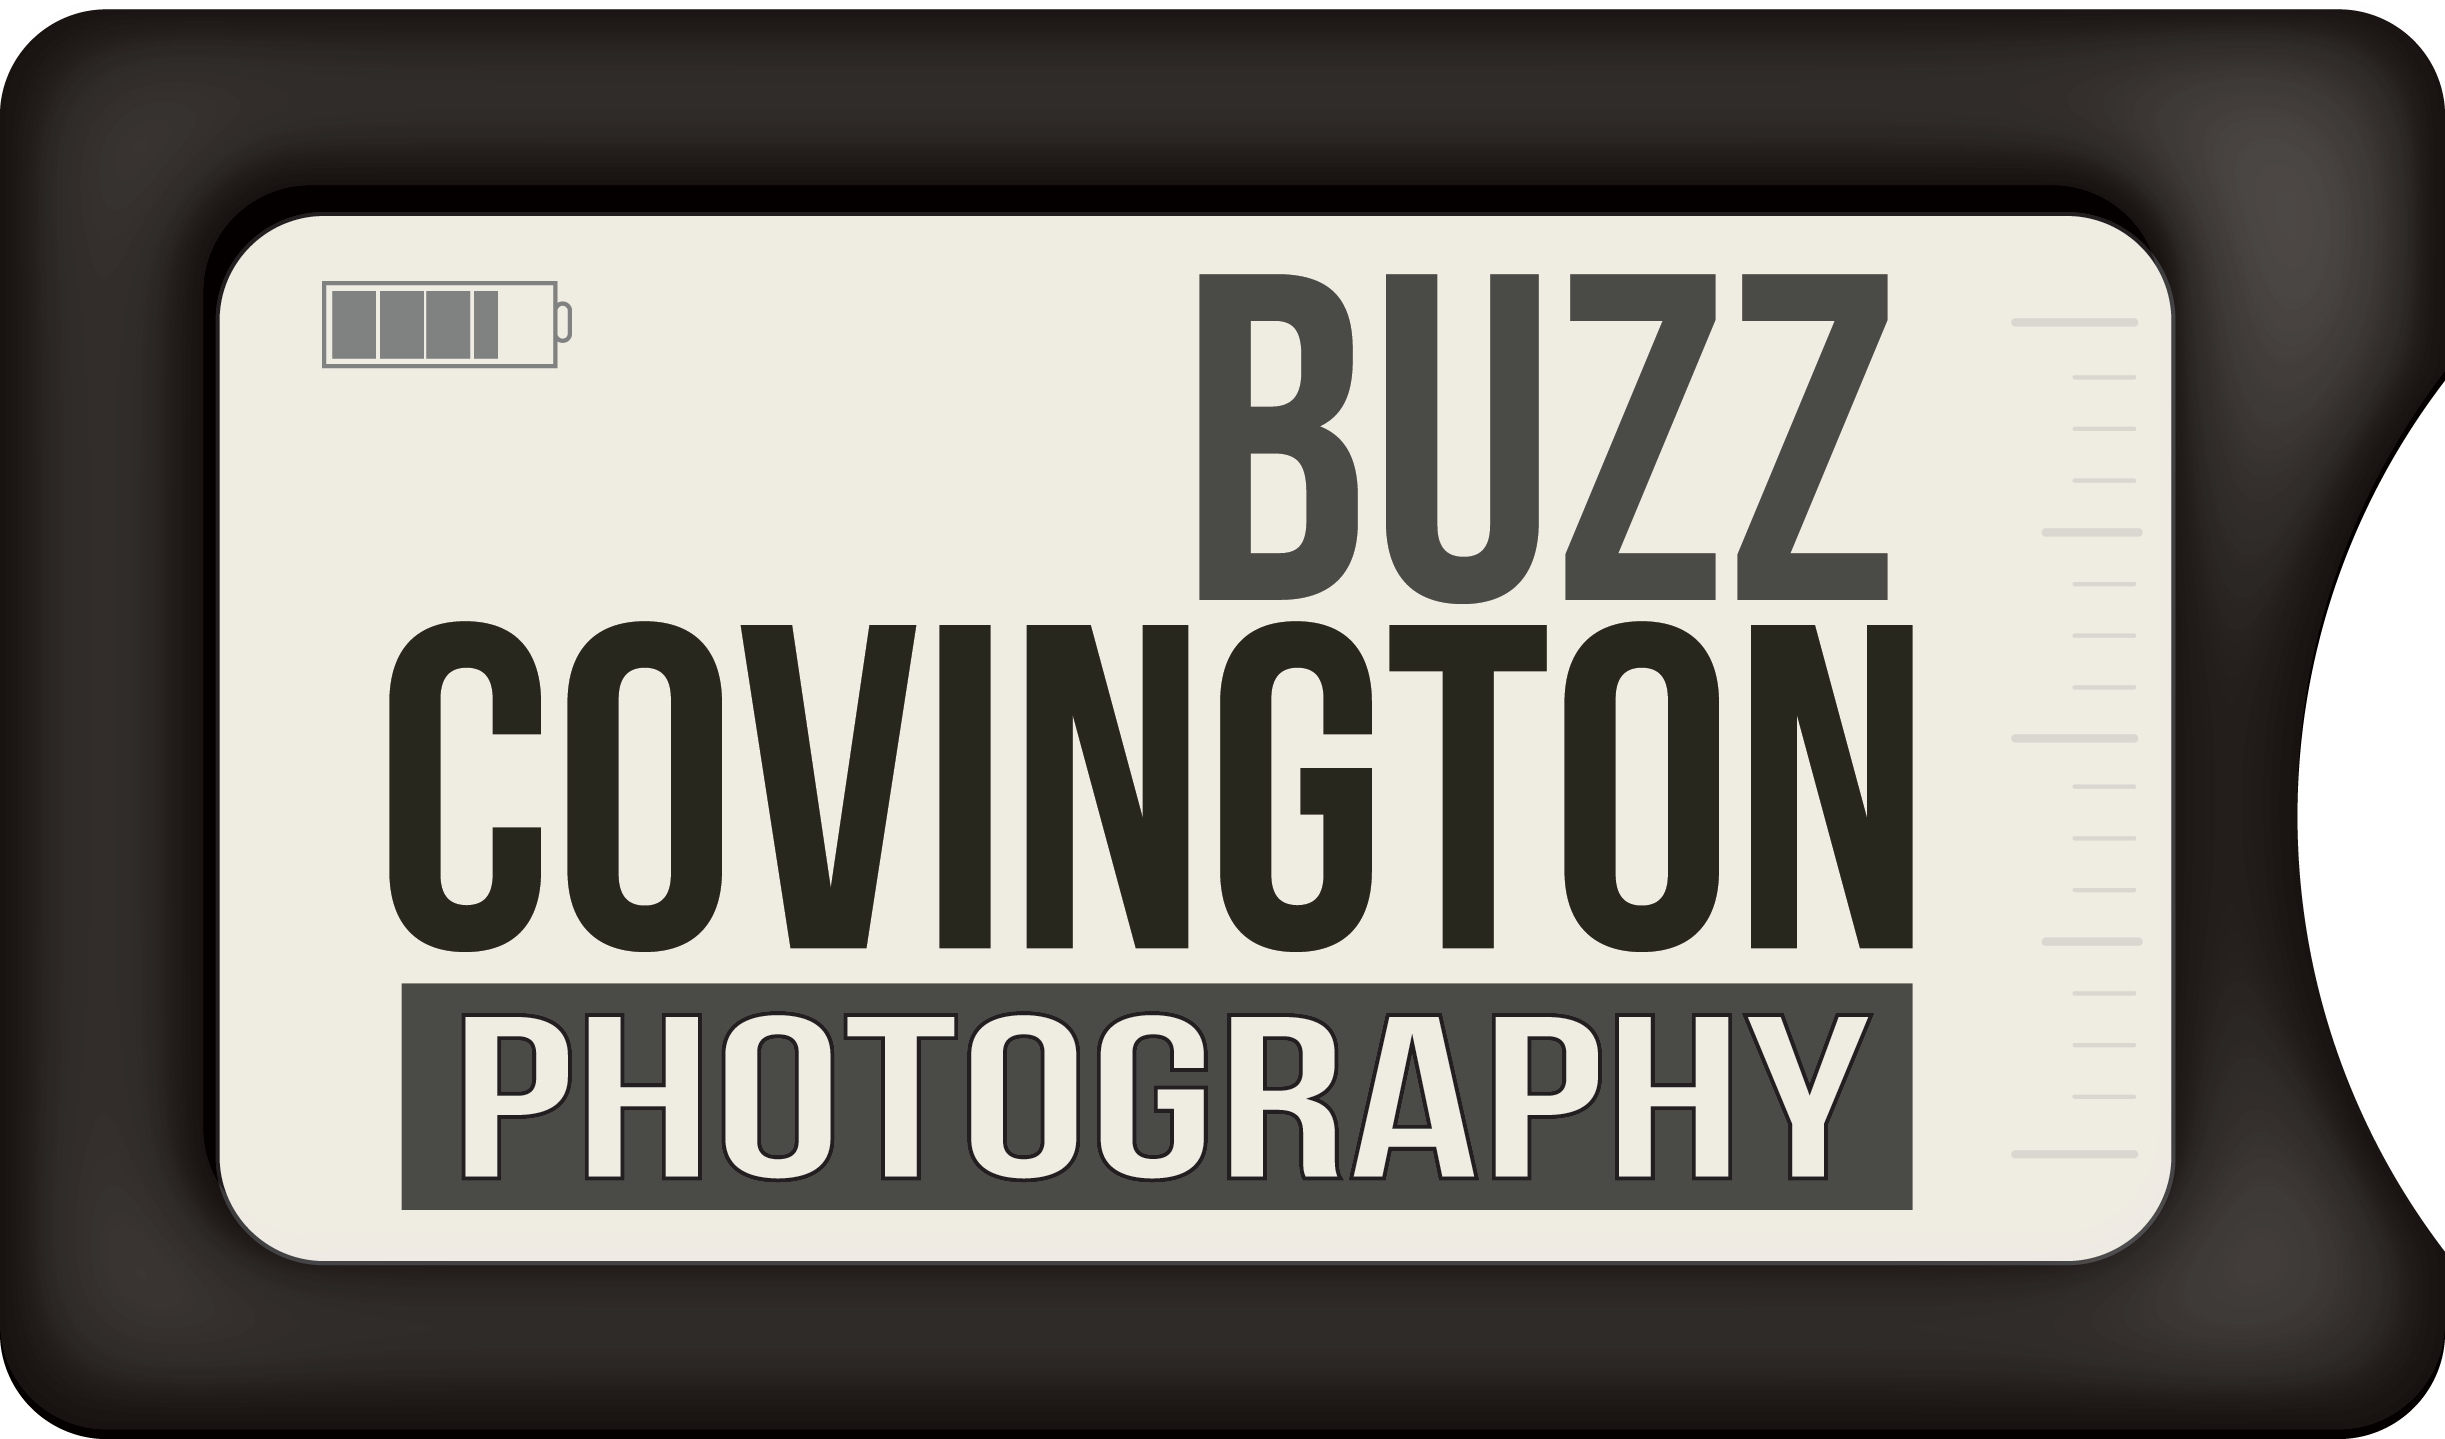 Buzz Covington Commercial Photography